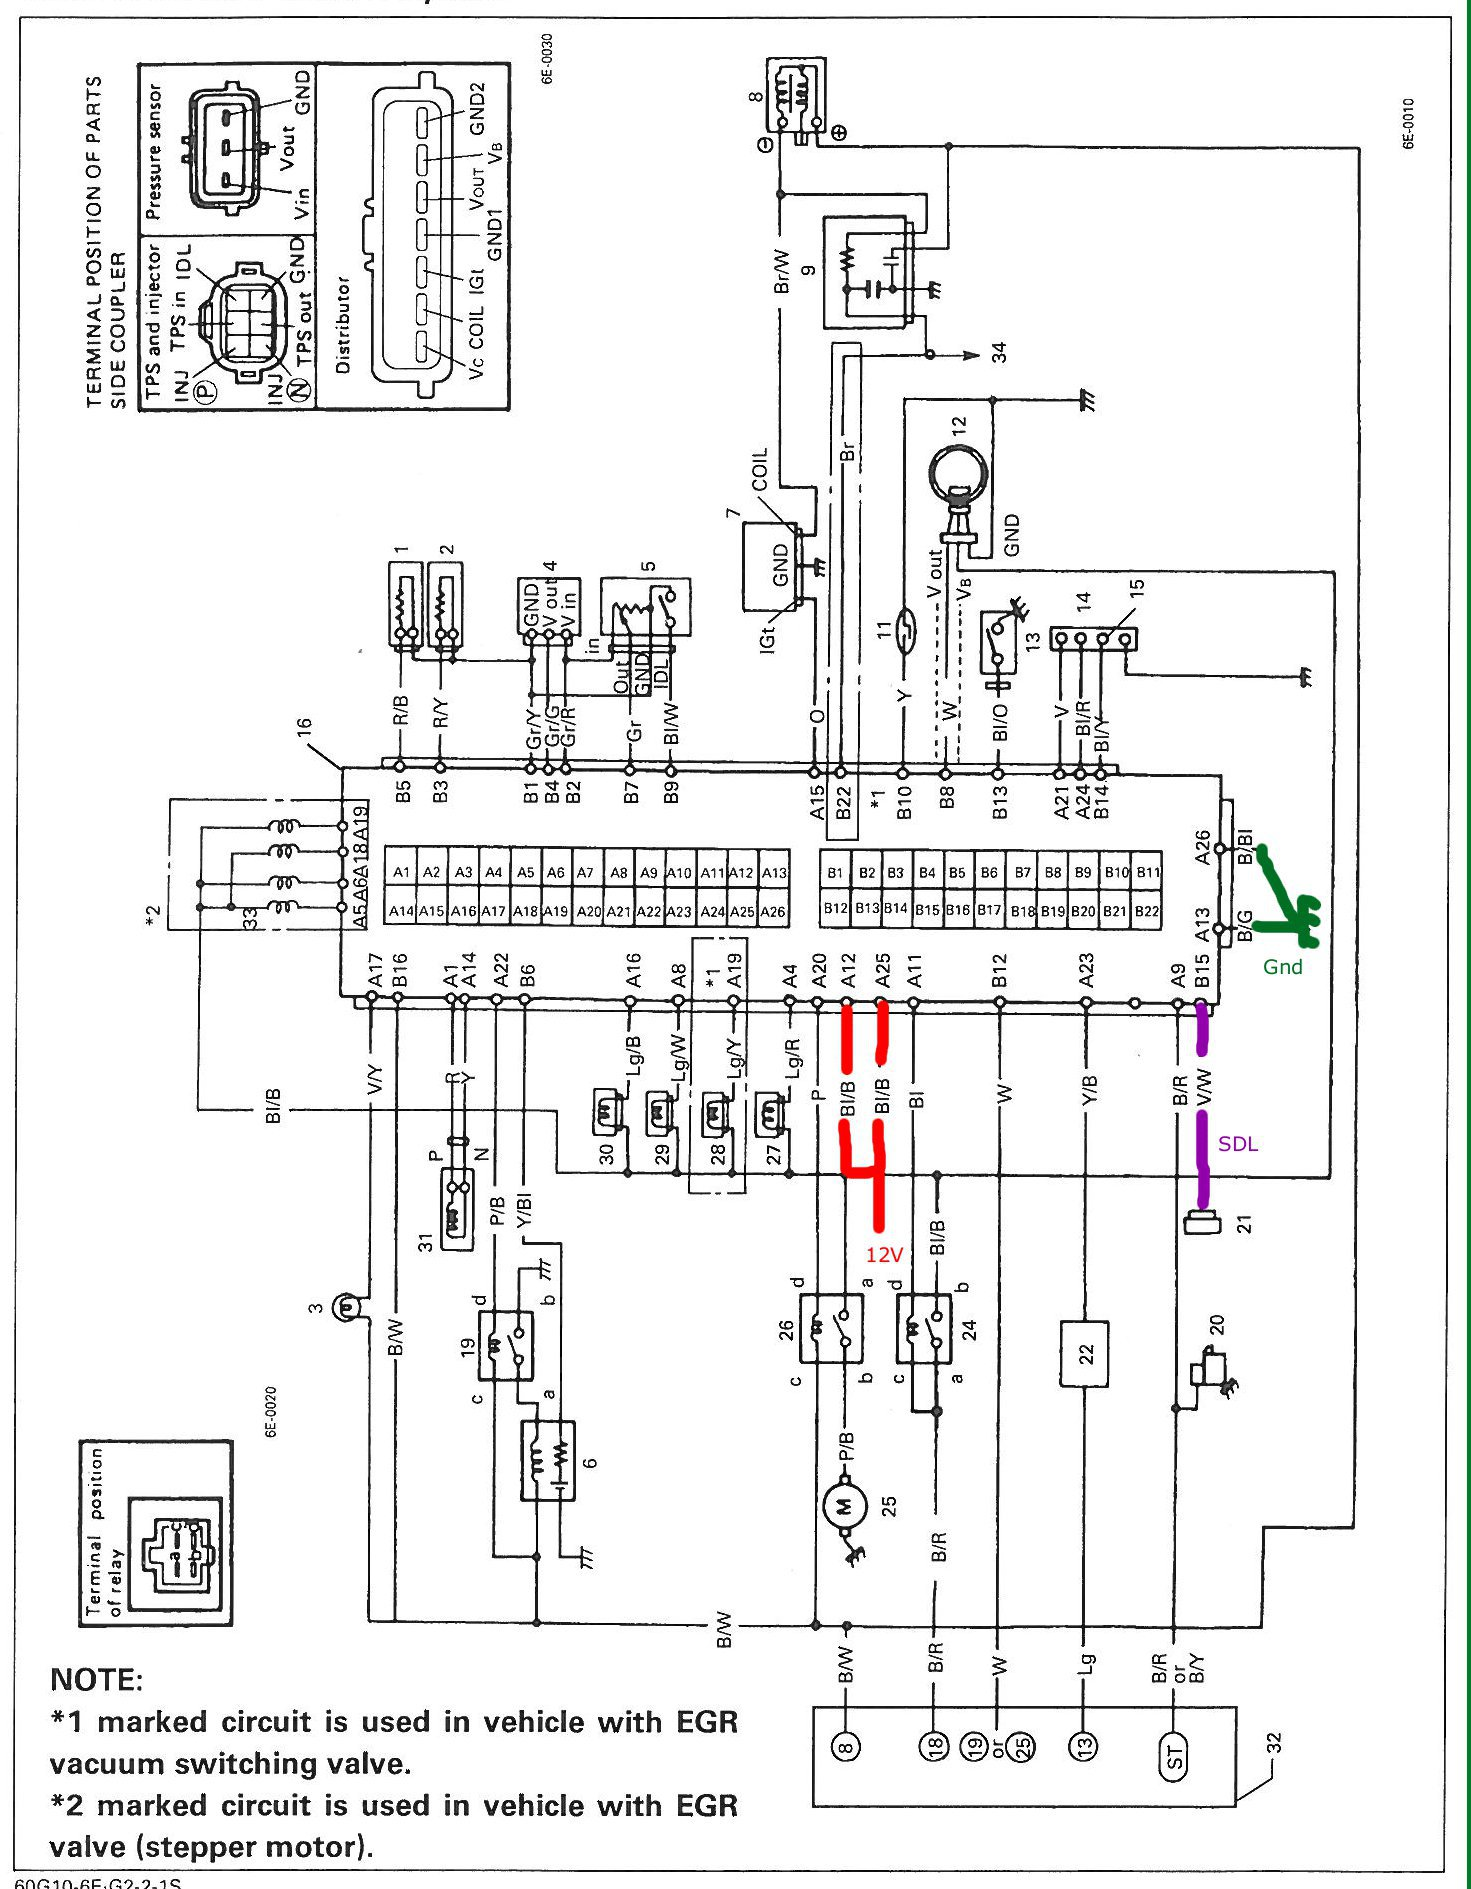 hight resolution of ae 82 toyota corolla wiring diagram ae free engine image